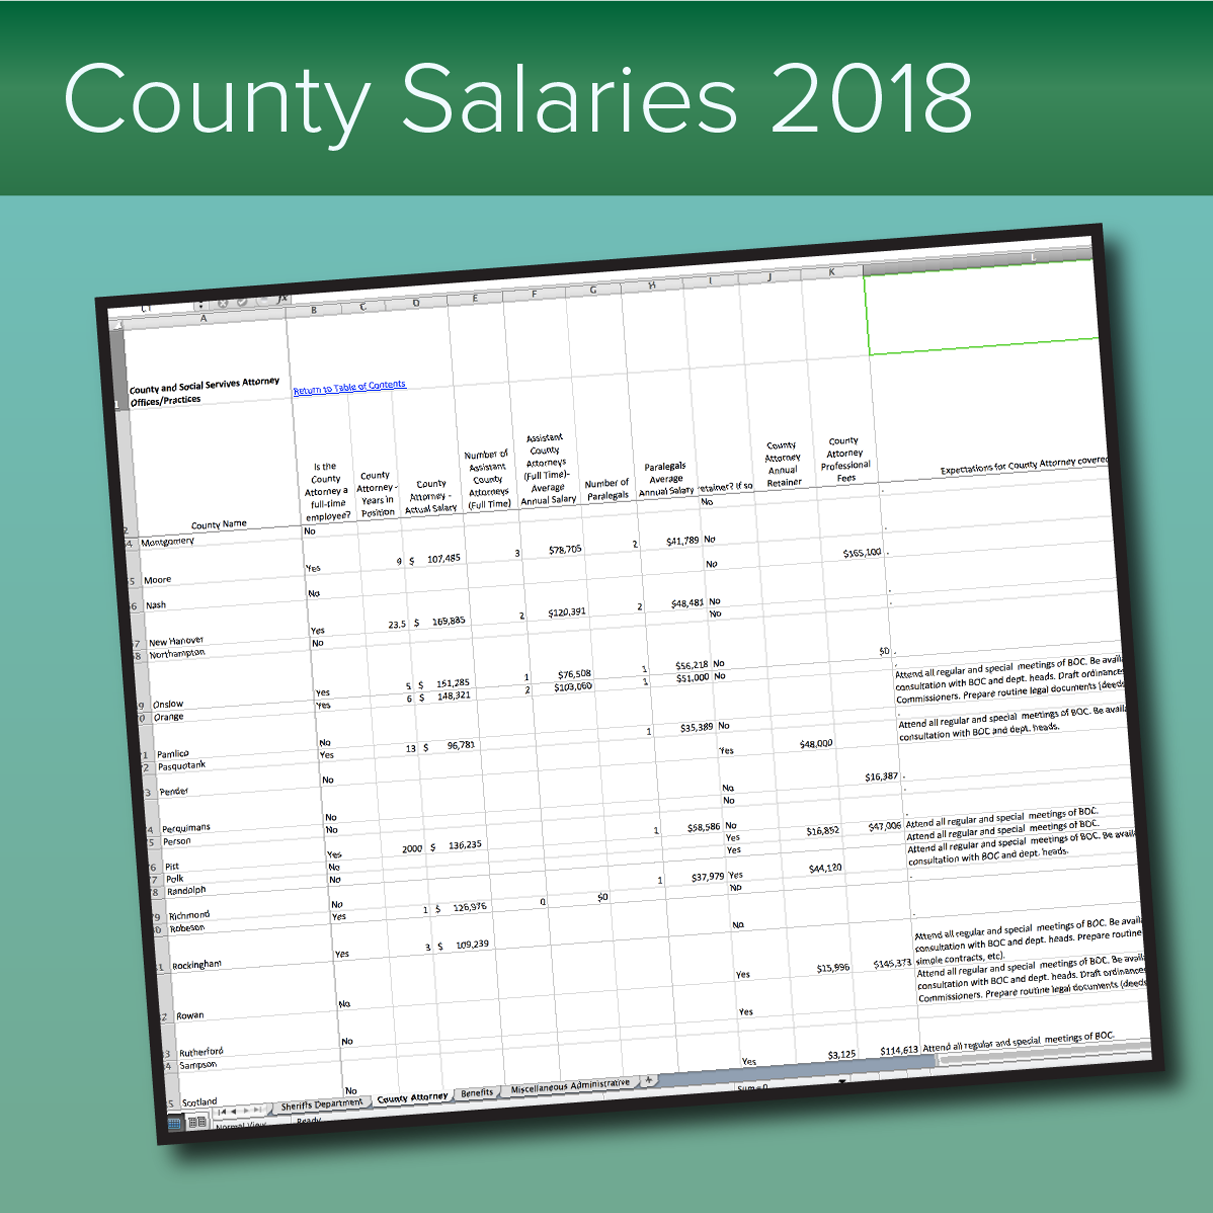 County salaries report, 2018